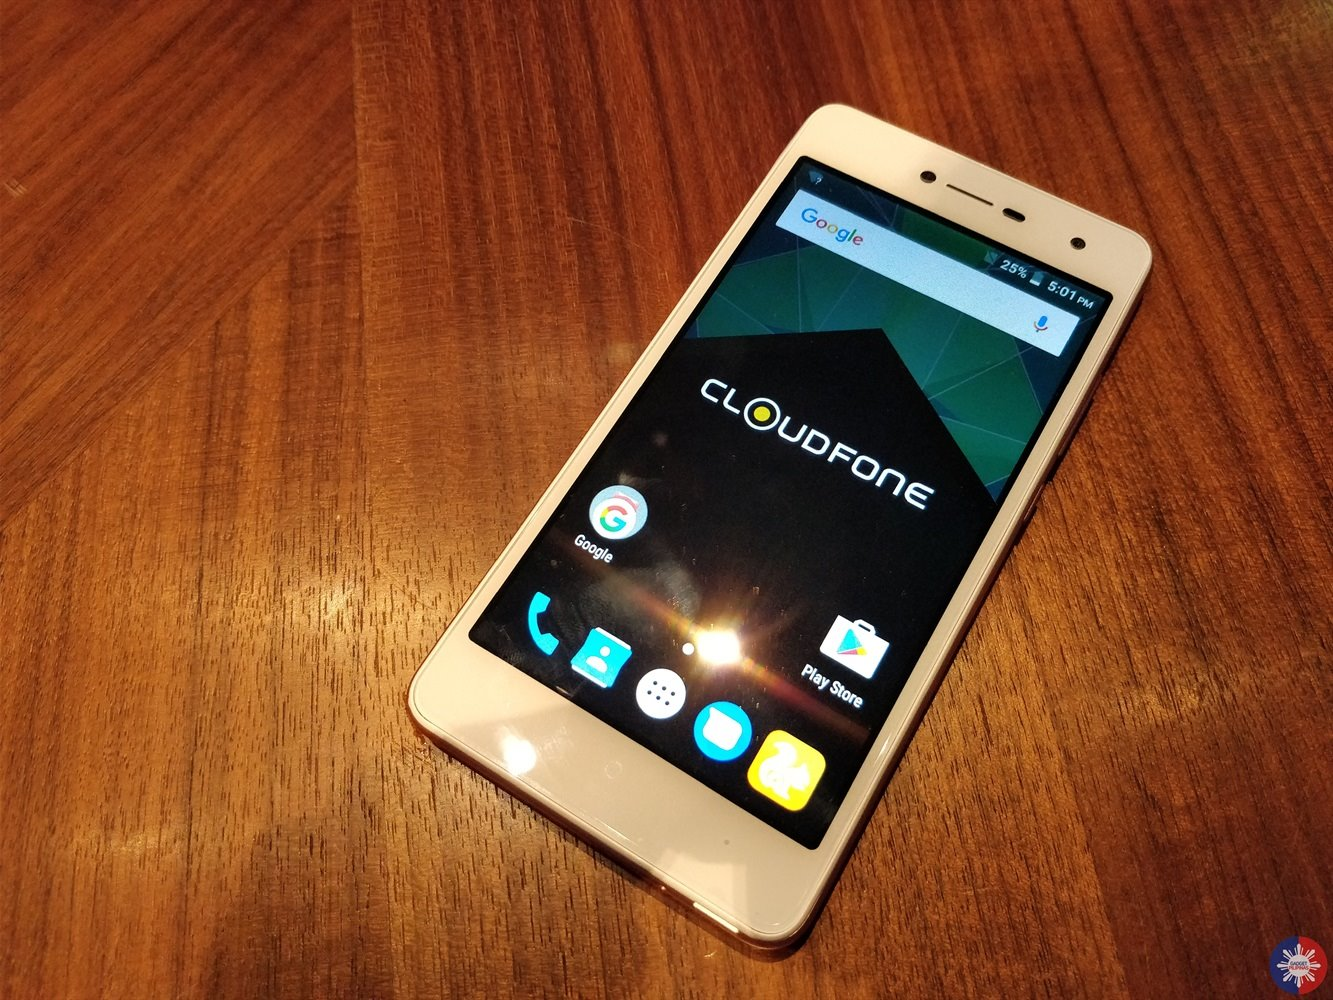 Cloudfone Launches Thrill Boost 2: Quad-Core CPU and Android Nougat For Only PhP2,699